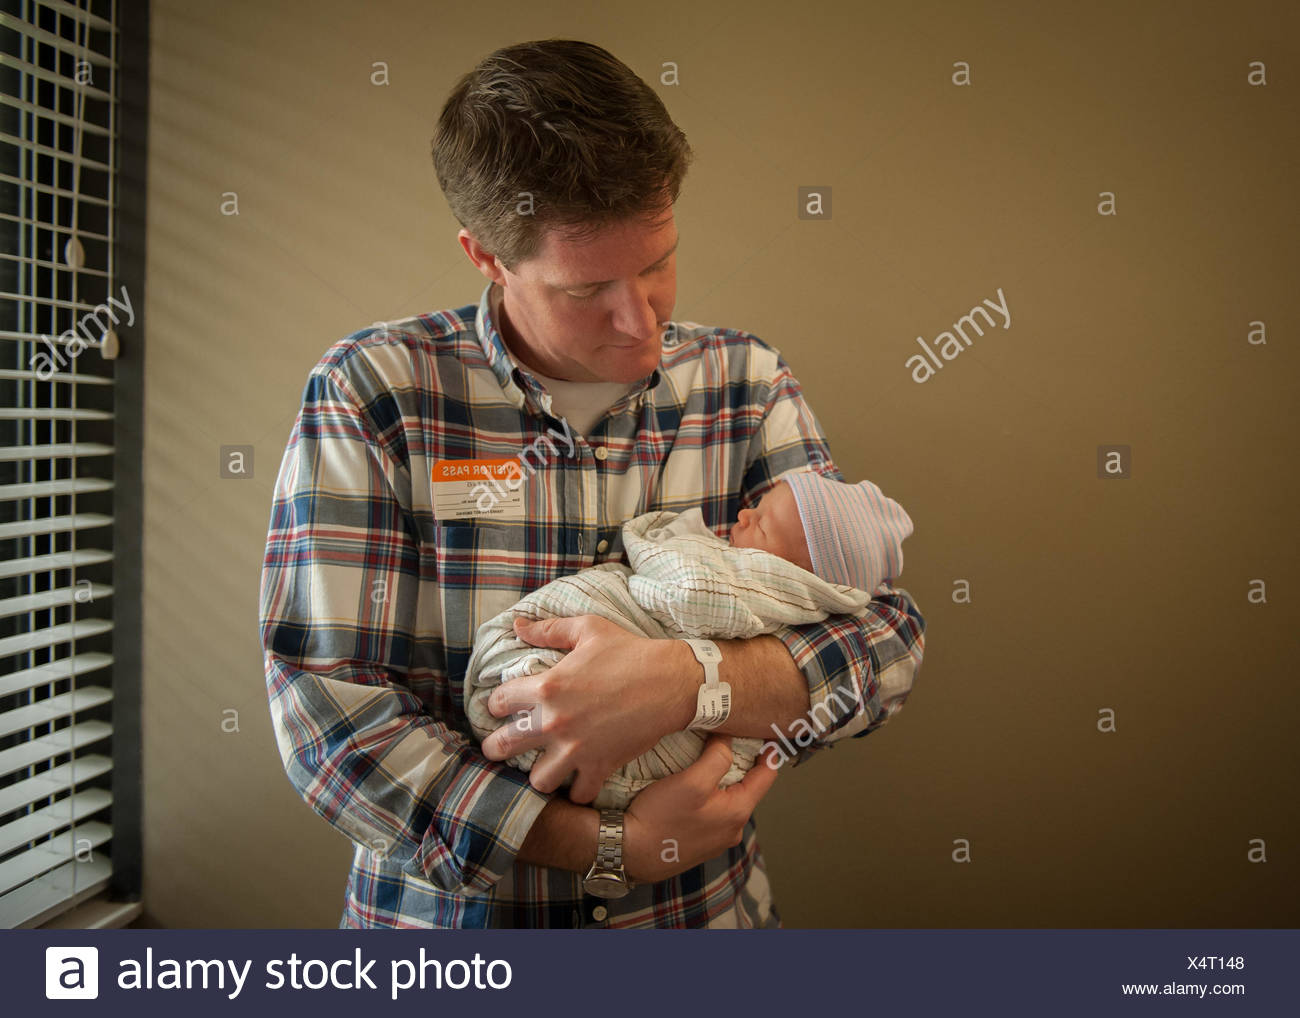 Père holding newborn baby in hospital Photo Stock